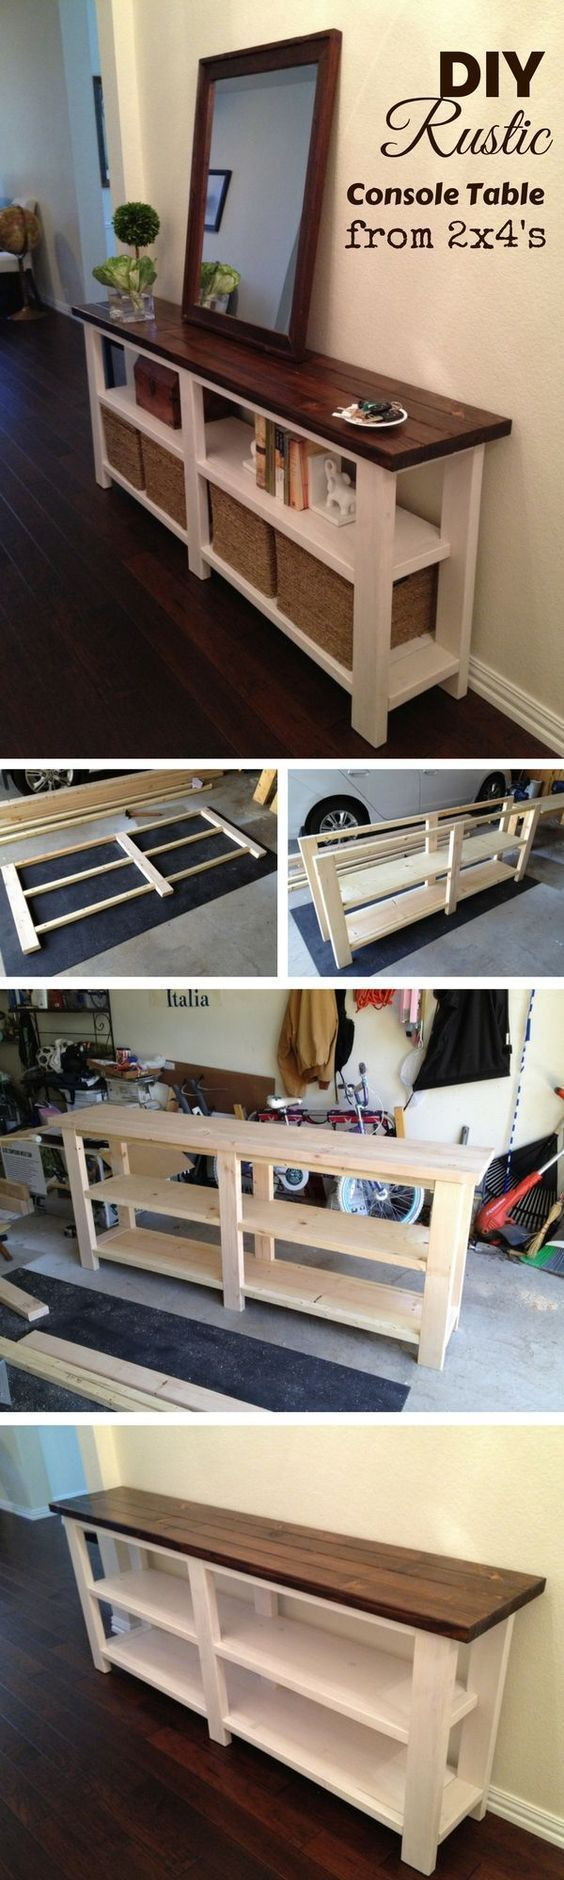 Check out how to make a DIY wooden rustic console table from 2x4s #buildingfurniture